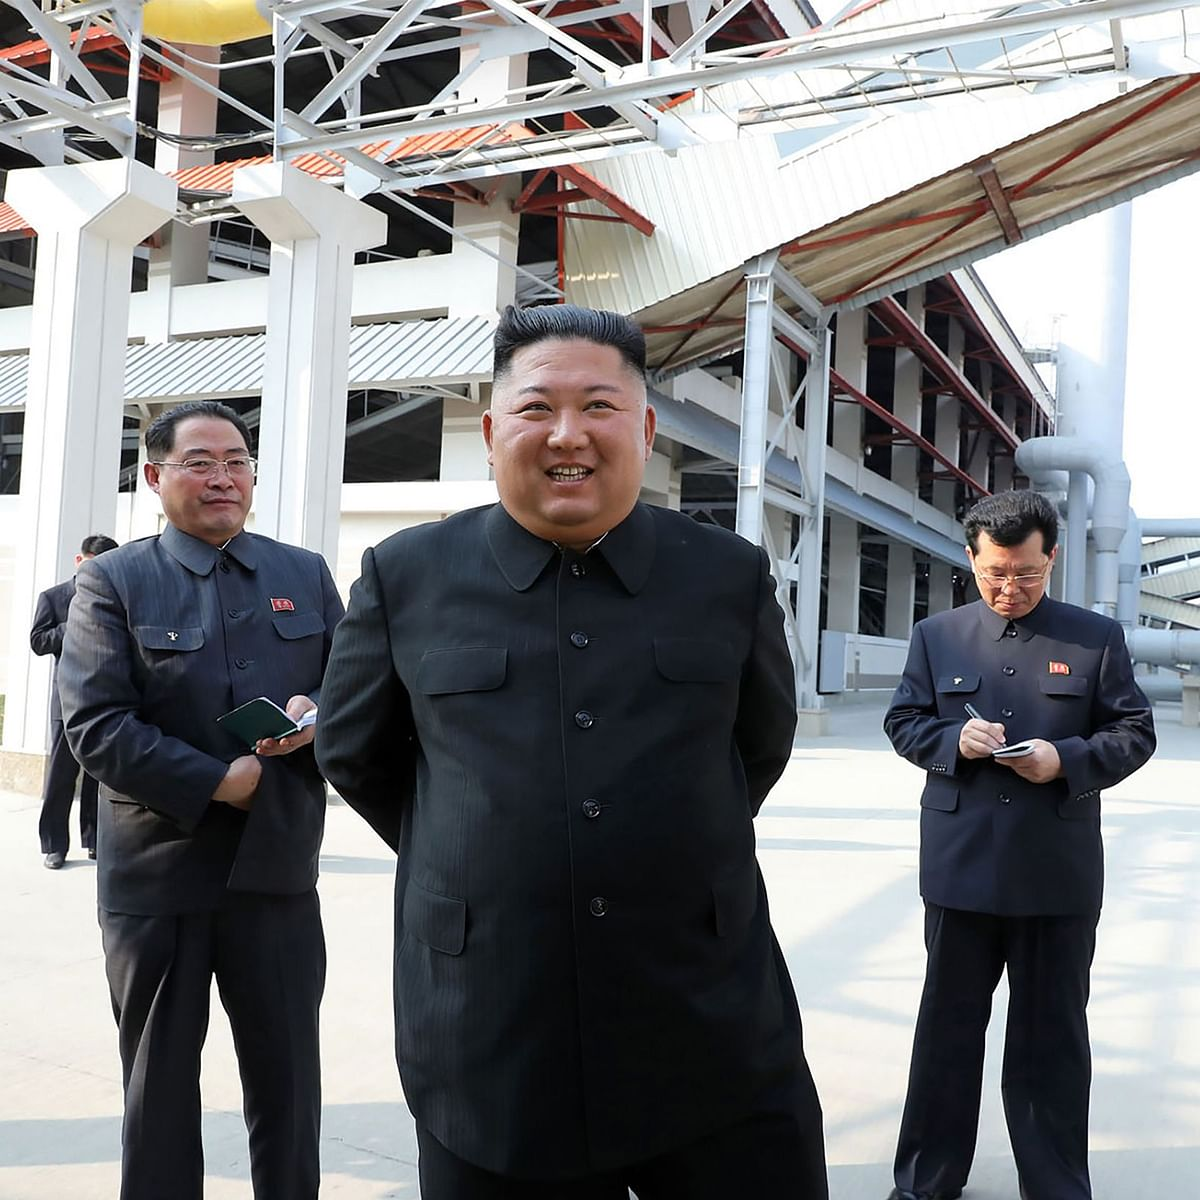 'Prep to cope with any provocation...': North Korea's Kim Jong-un has a message for the country's military